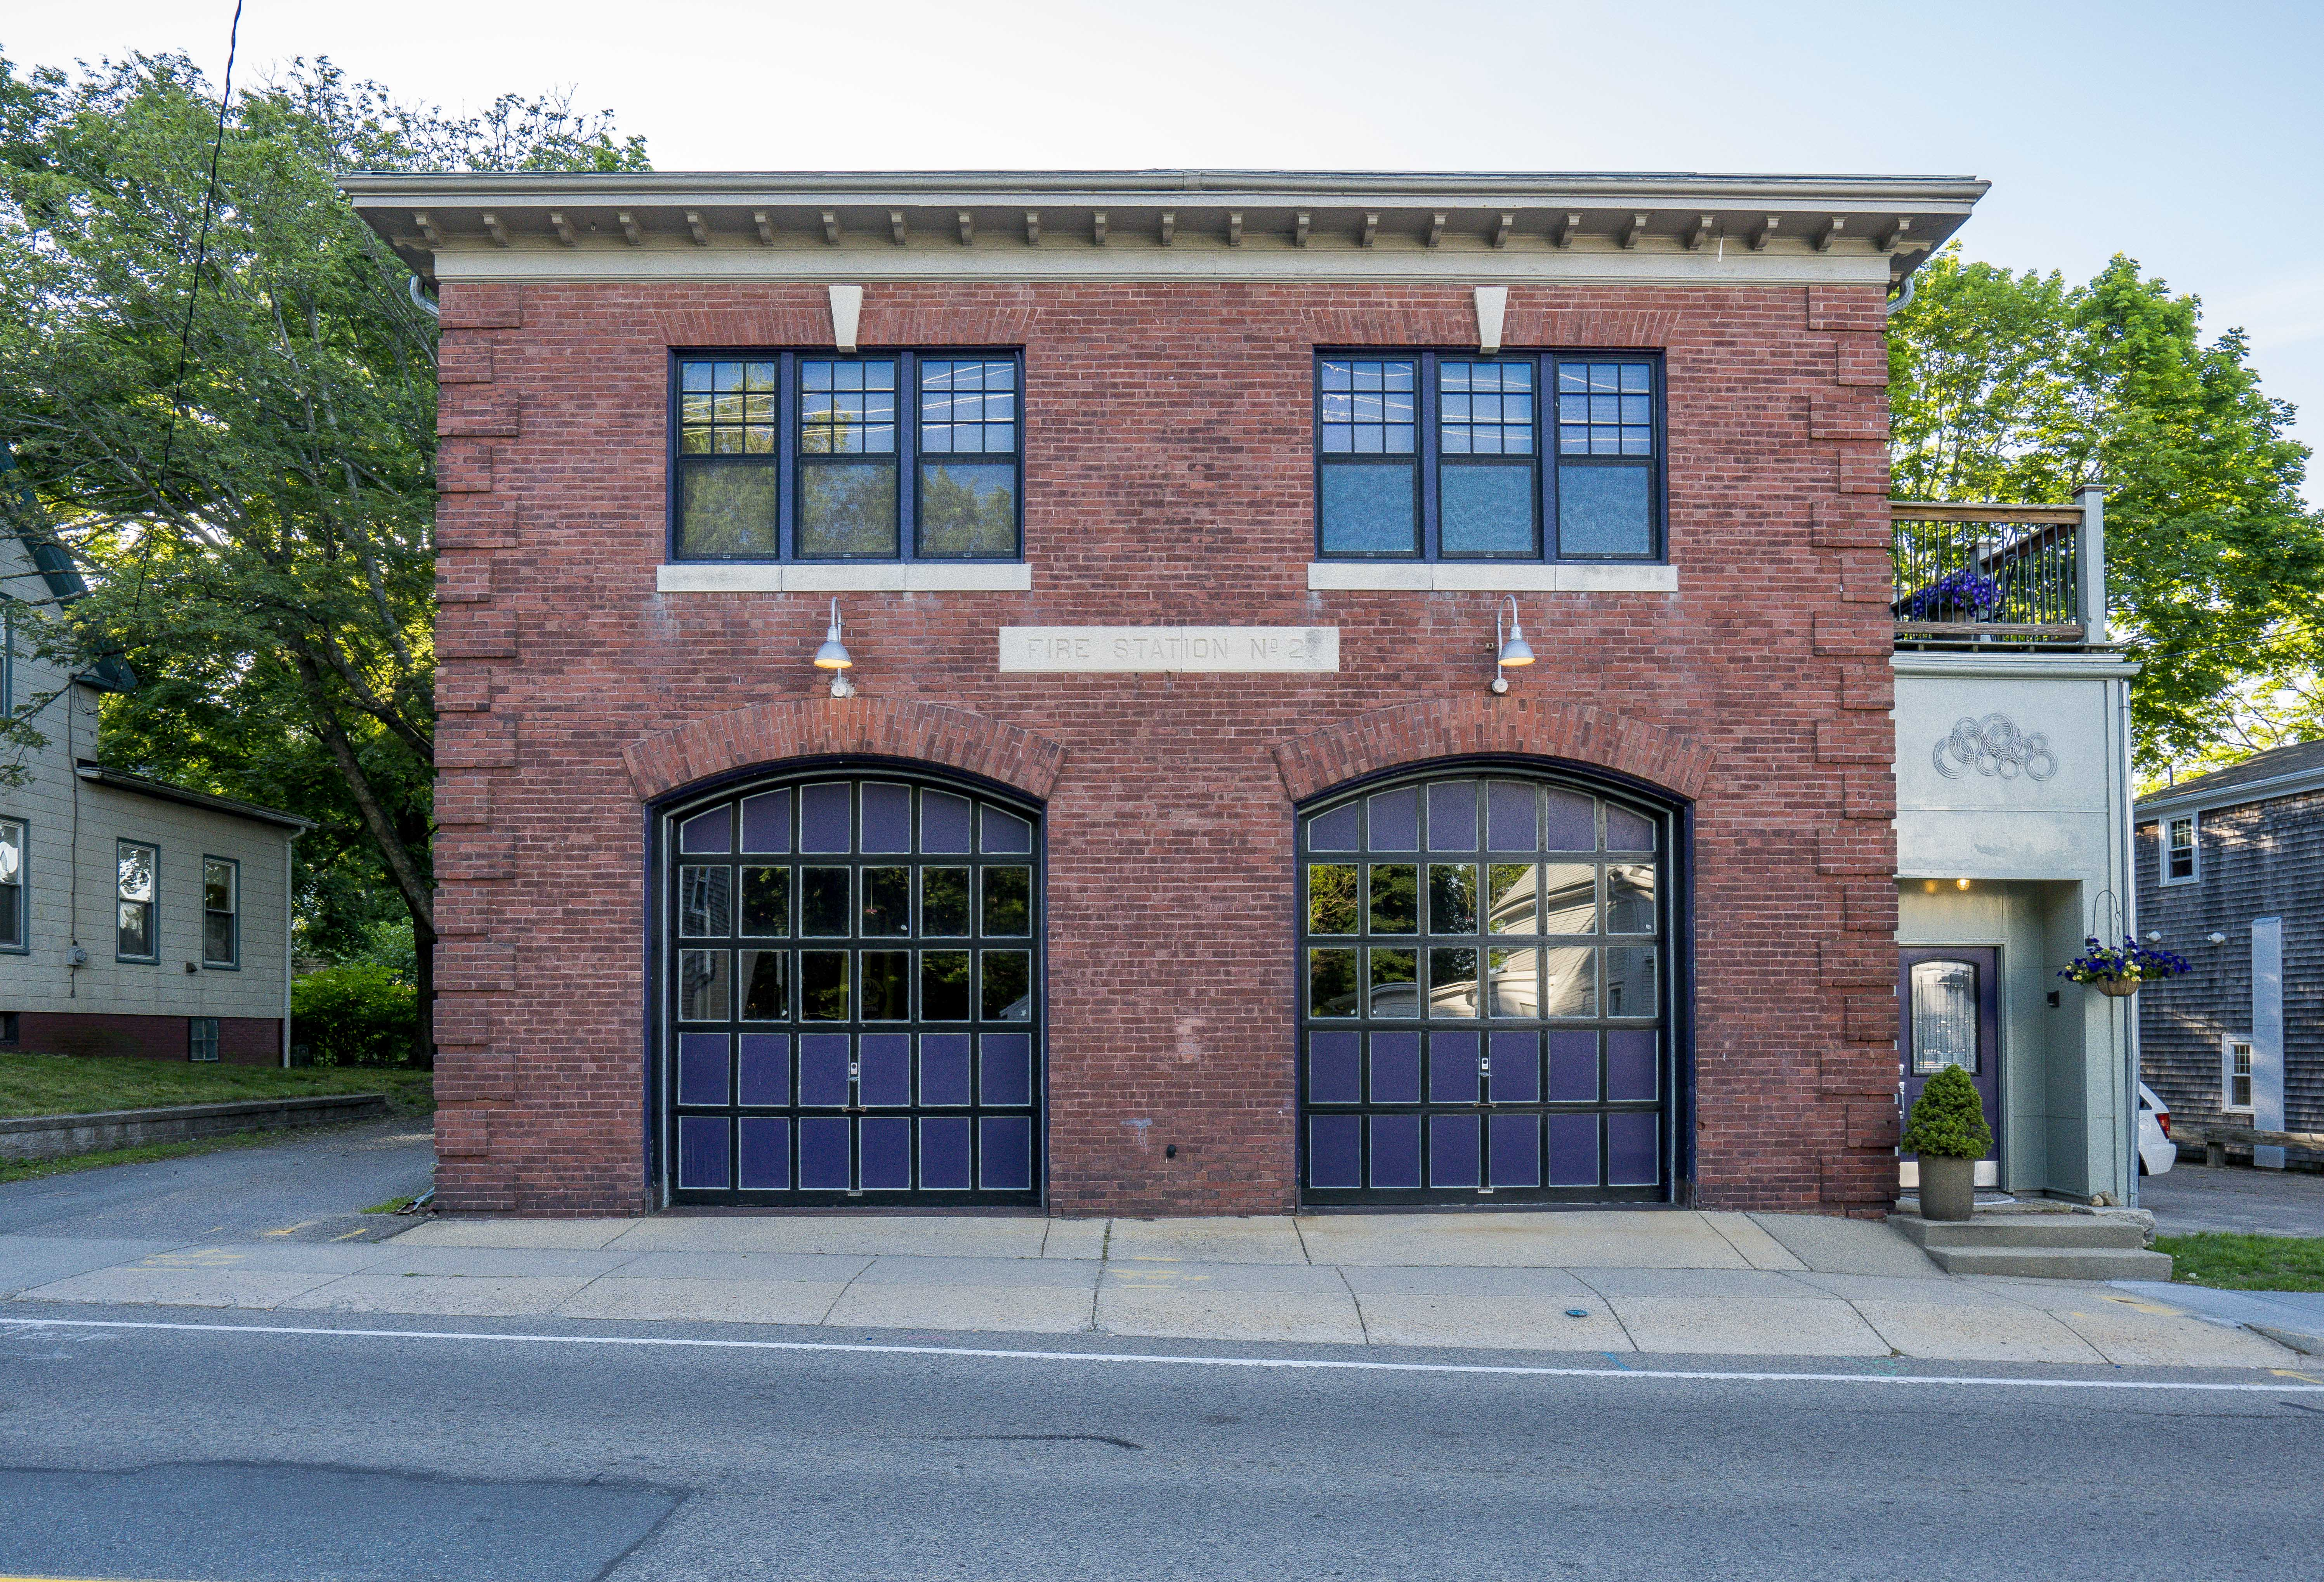 Casa Unifamiliar por un Venta en Restored Firehouse 5 South Street Plymouth, Massachusetts, 02360 Estados Unidos